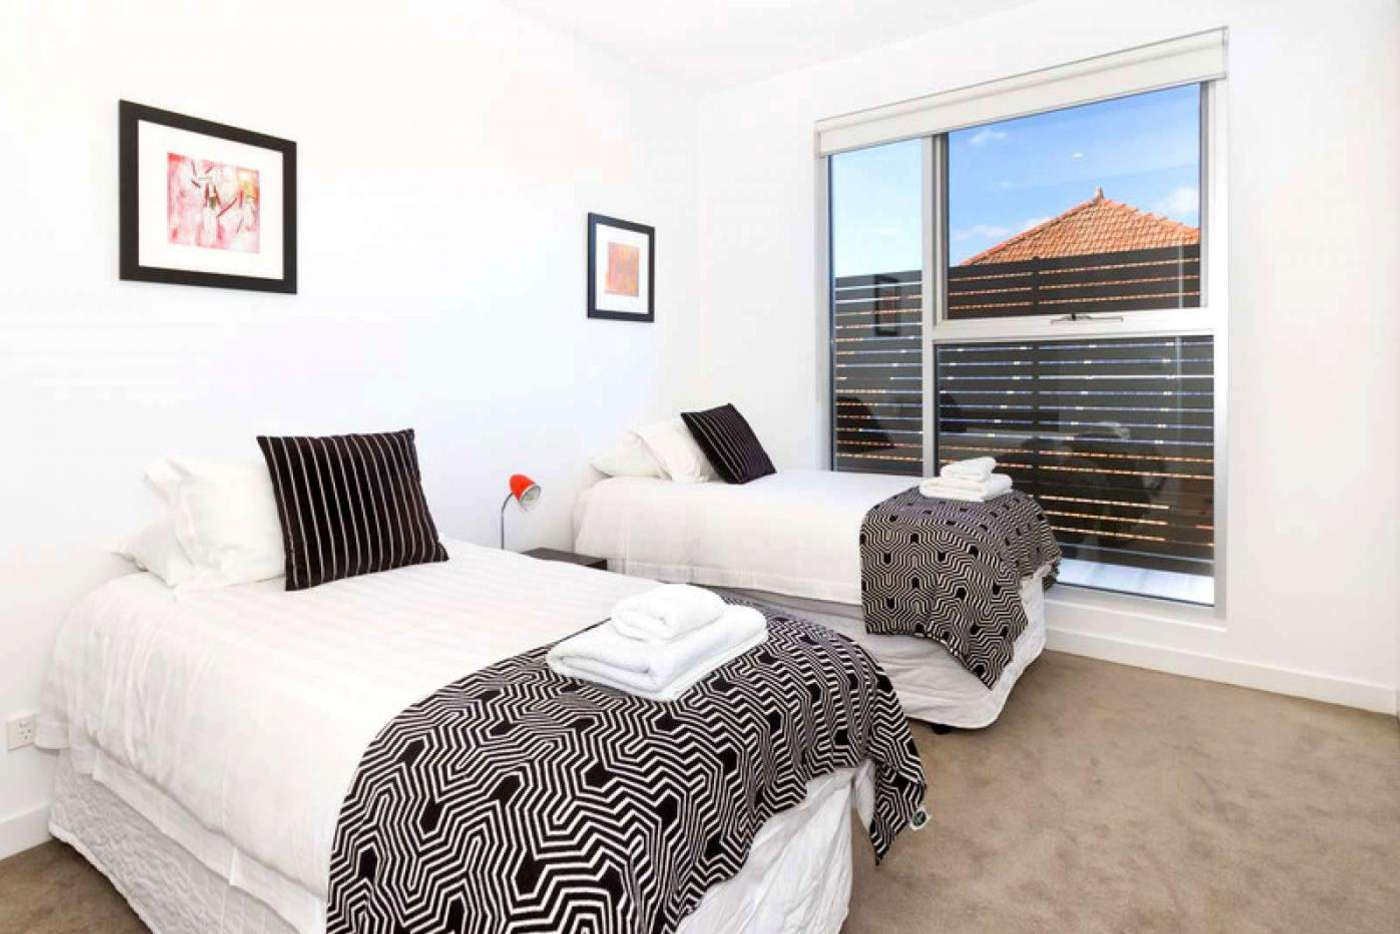 Sixth view of Homely apartment listing, 204/220 Burke Road, Glen Iris VIC 3146